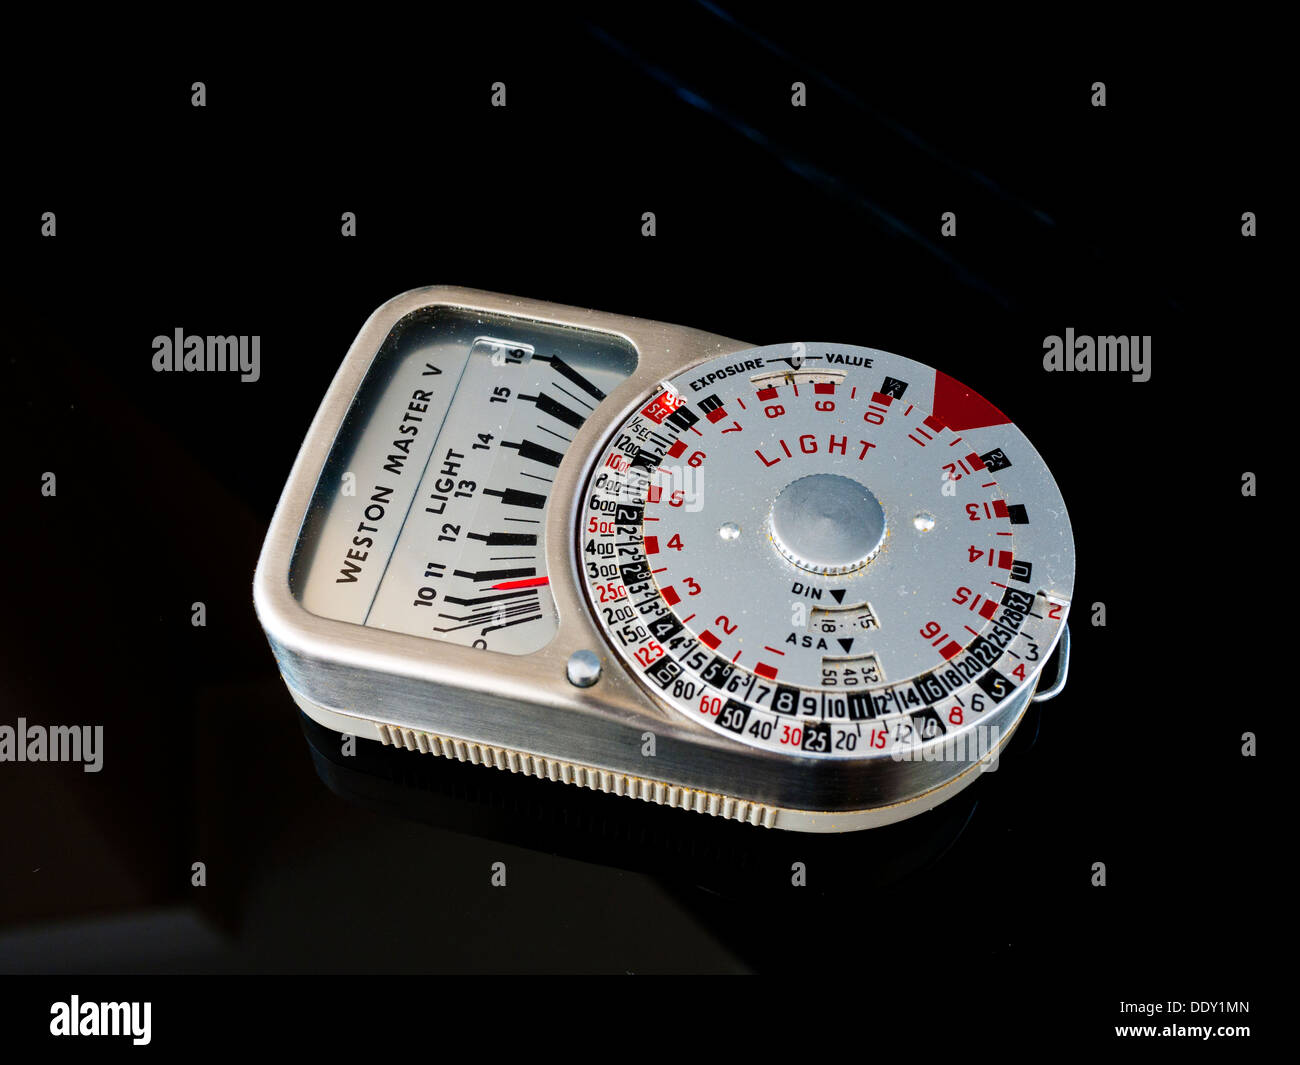 Weston Master vintage light meter. - Stock Image